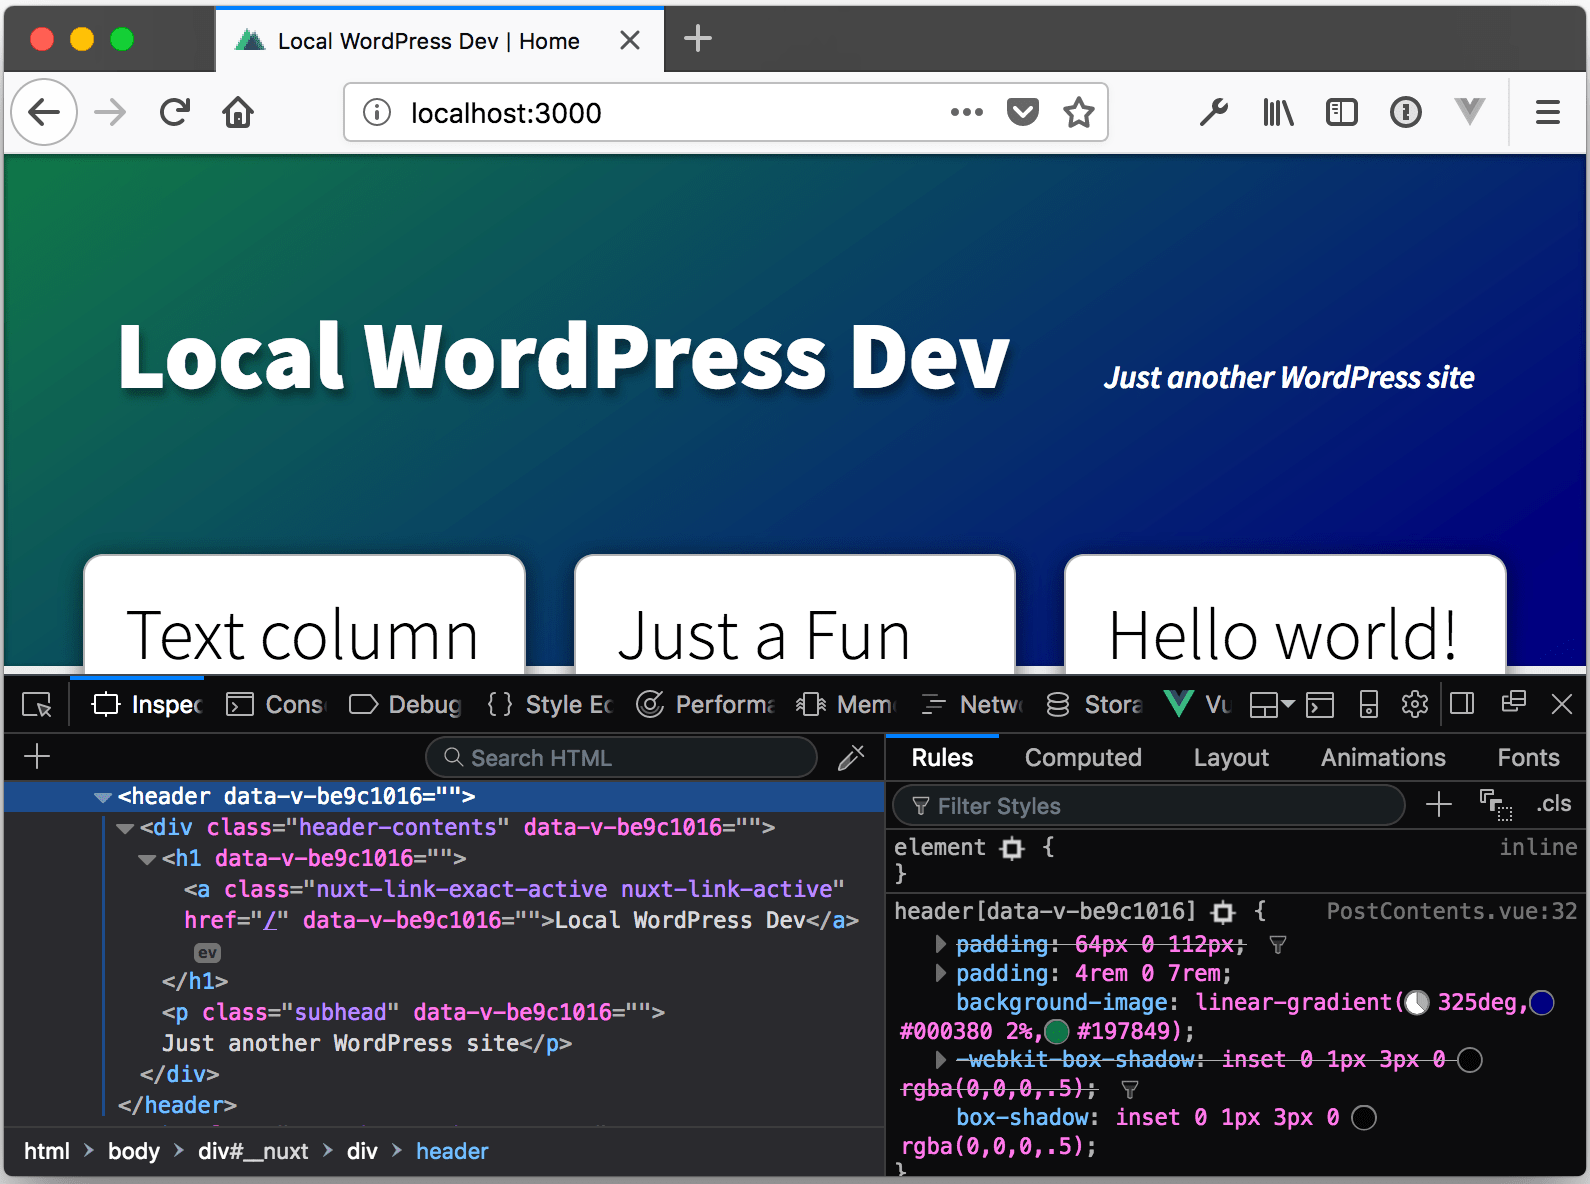 Building a Site with Vue, Nuxt js, and WordPress REST API, Part 3